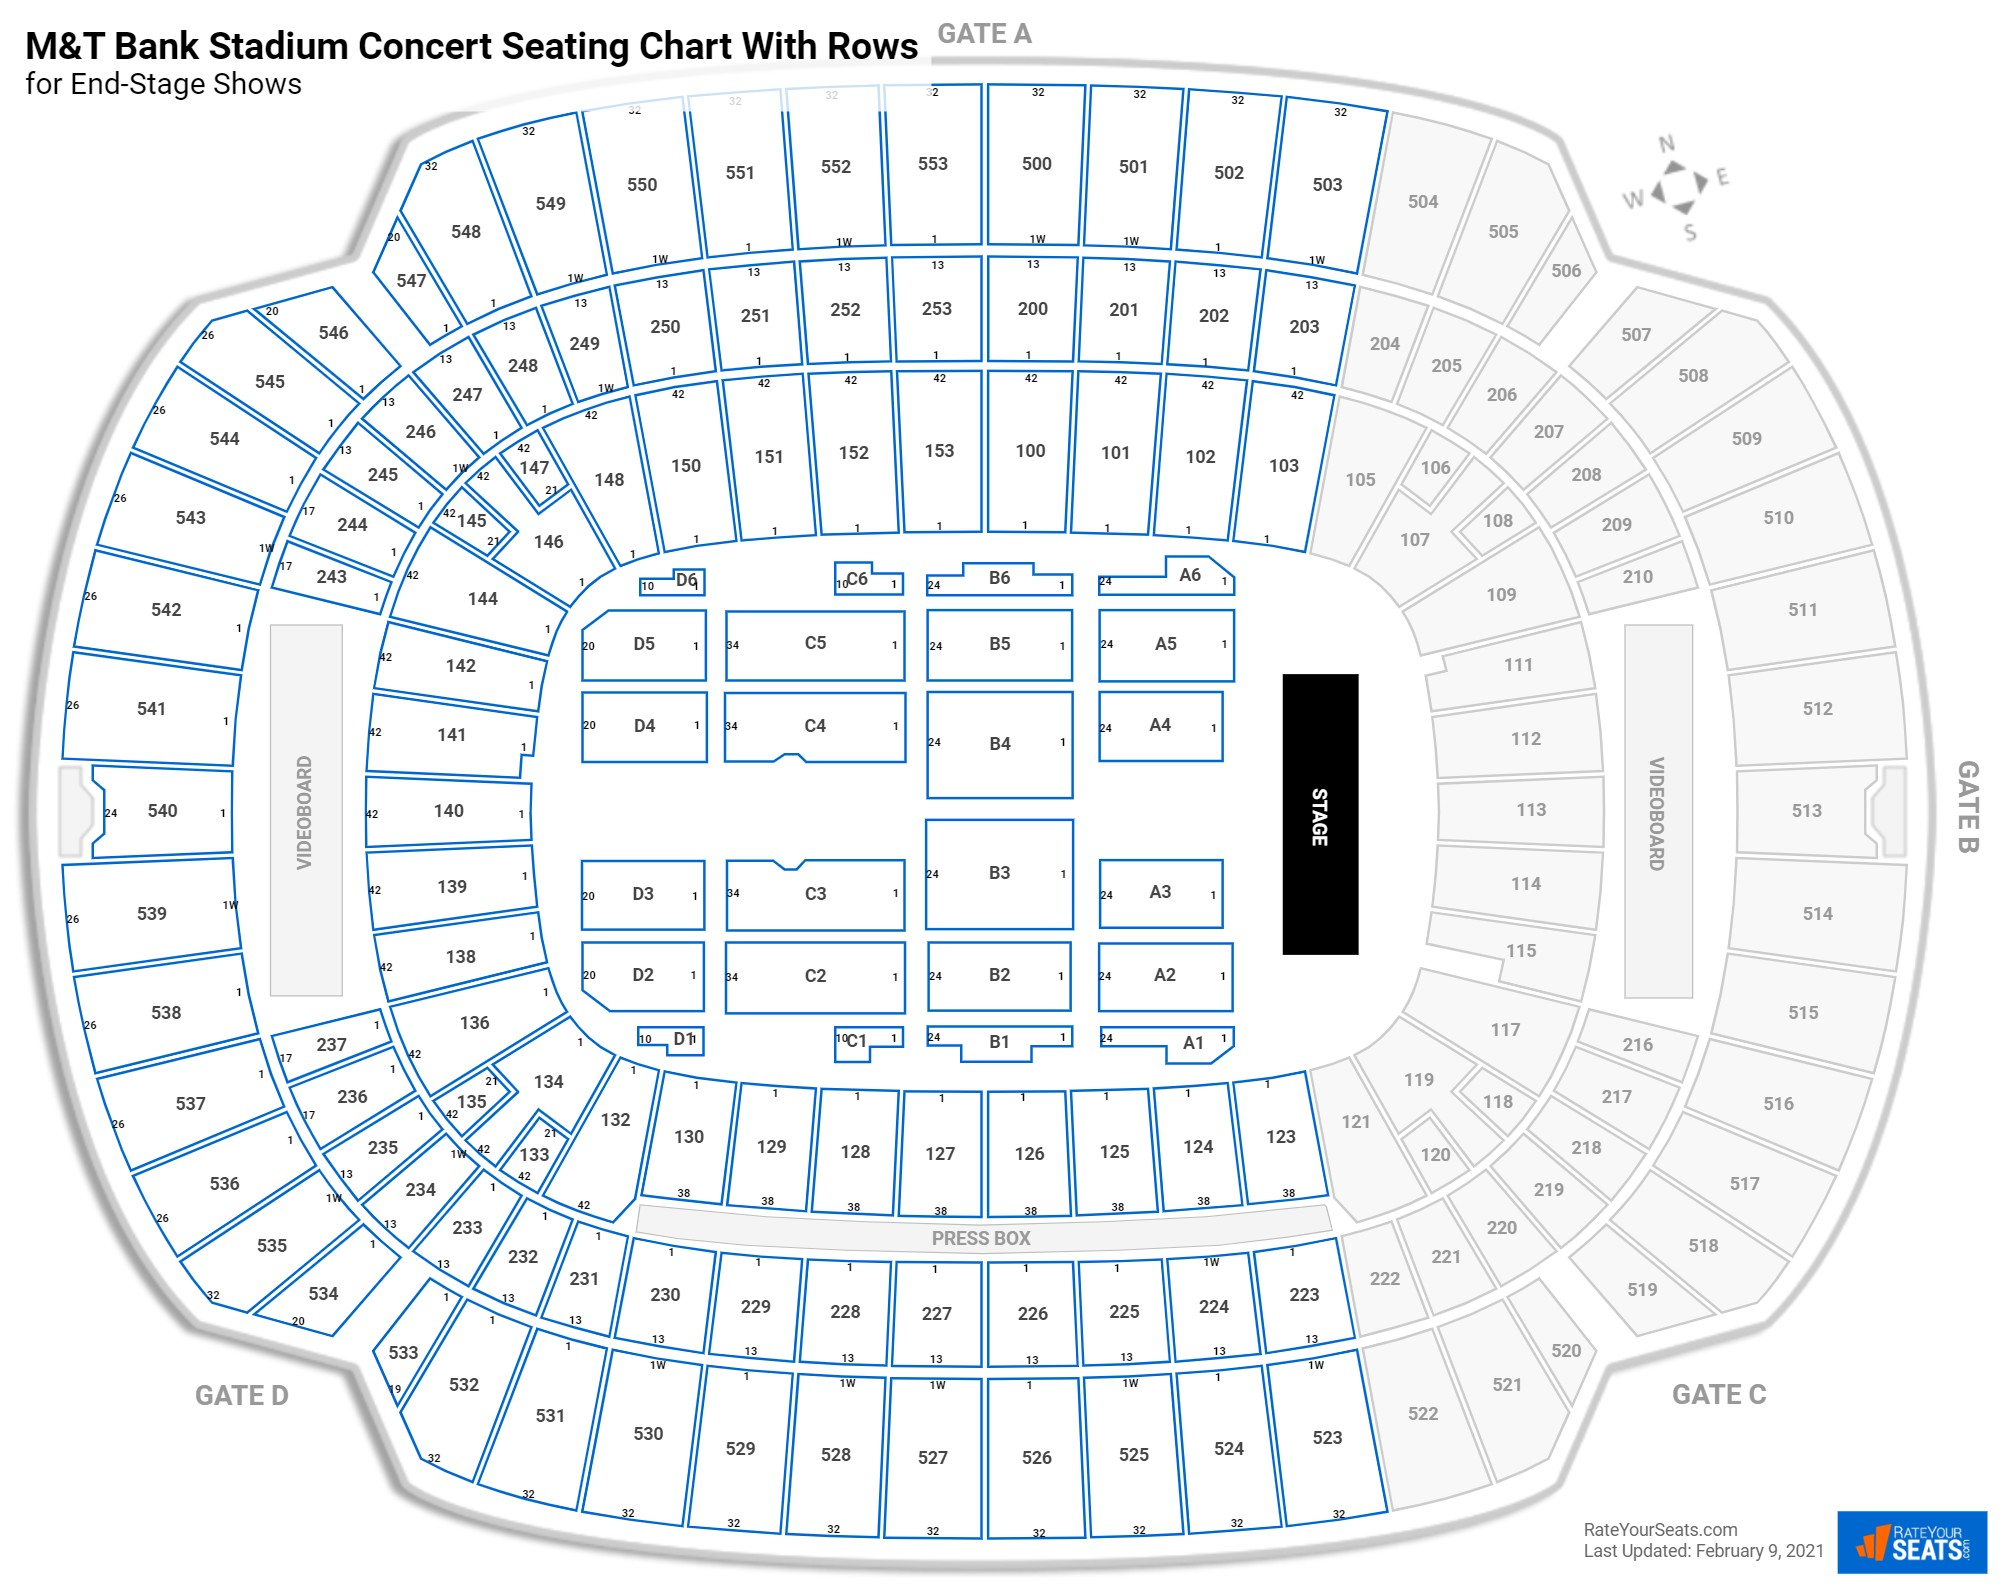 M&T Bank Stadium seating chart with rows concert